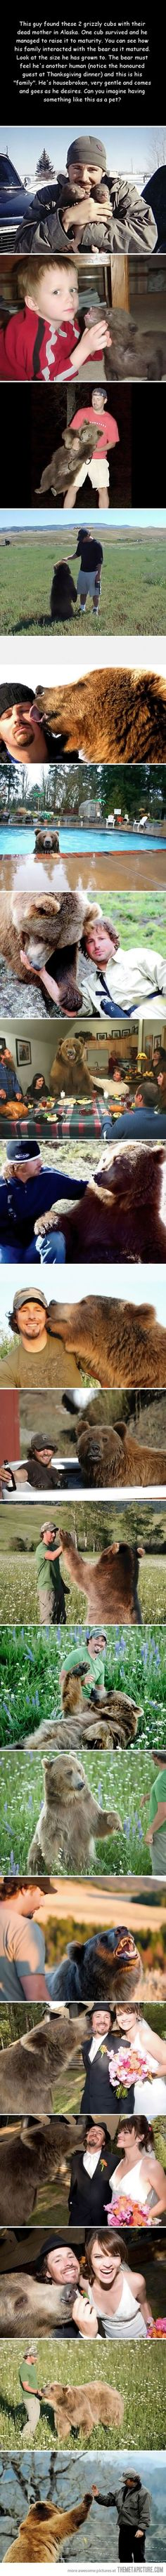 The story of a man and his bear